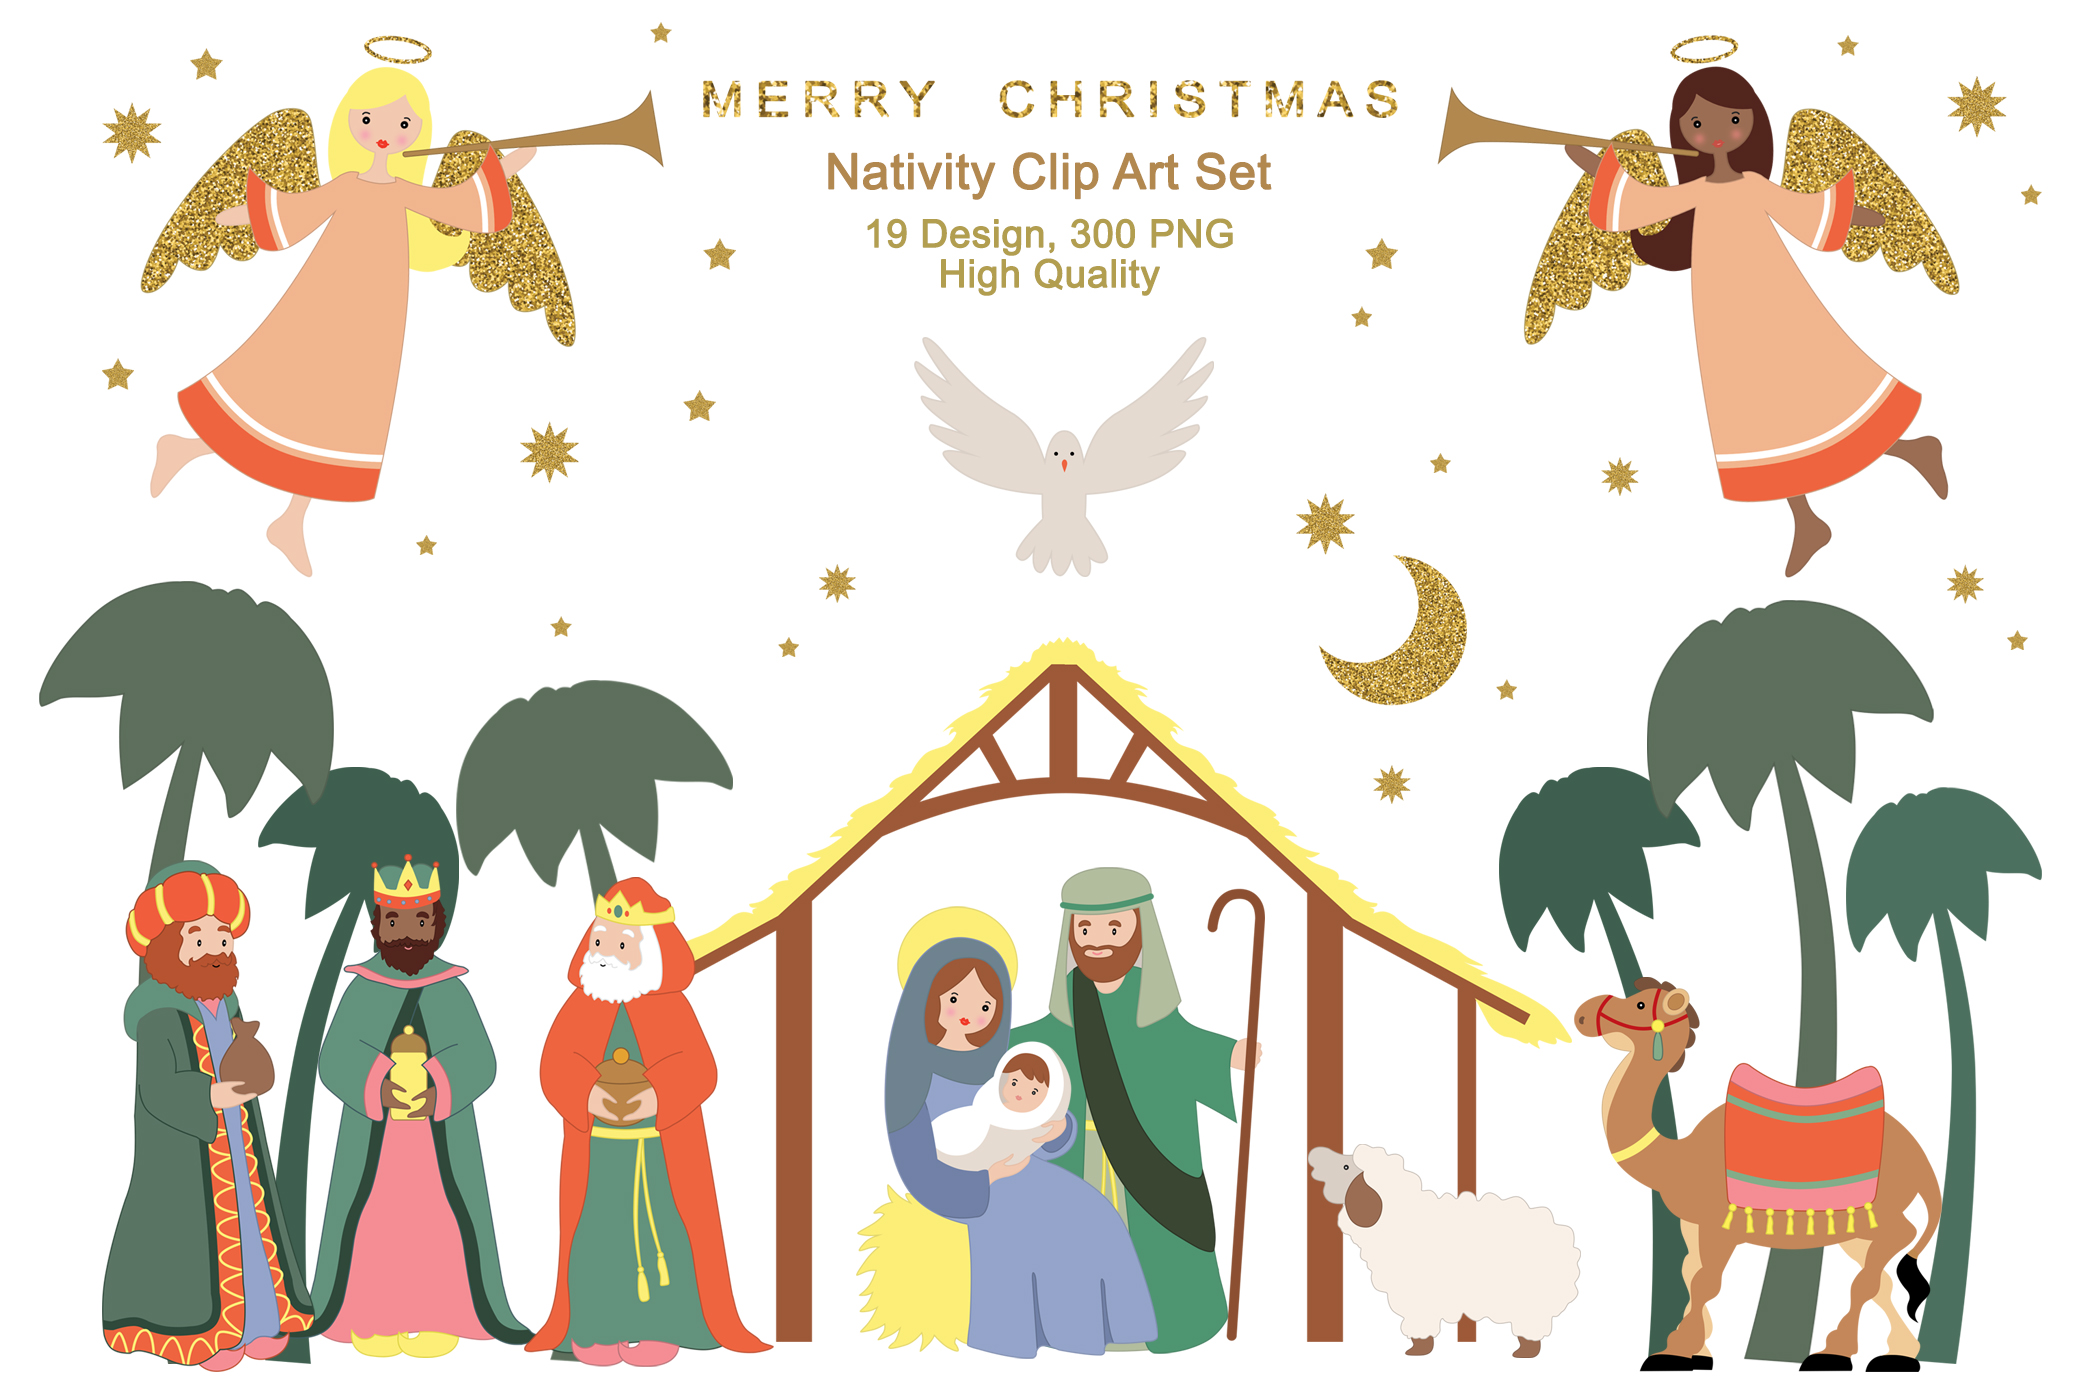 Download Free Nativity Religious Advent Christmas Graphic By Kabankova for Cricut Explore, Silhouette and other cutting machines.